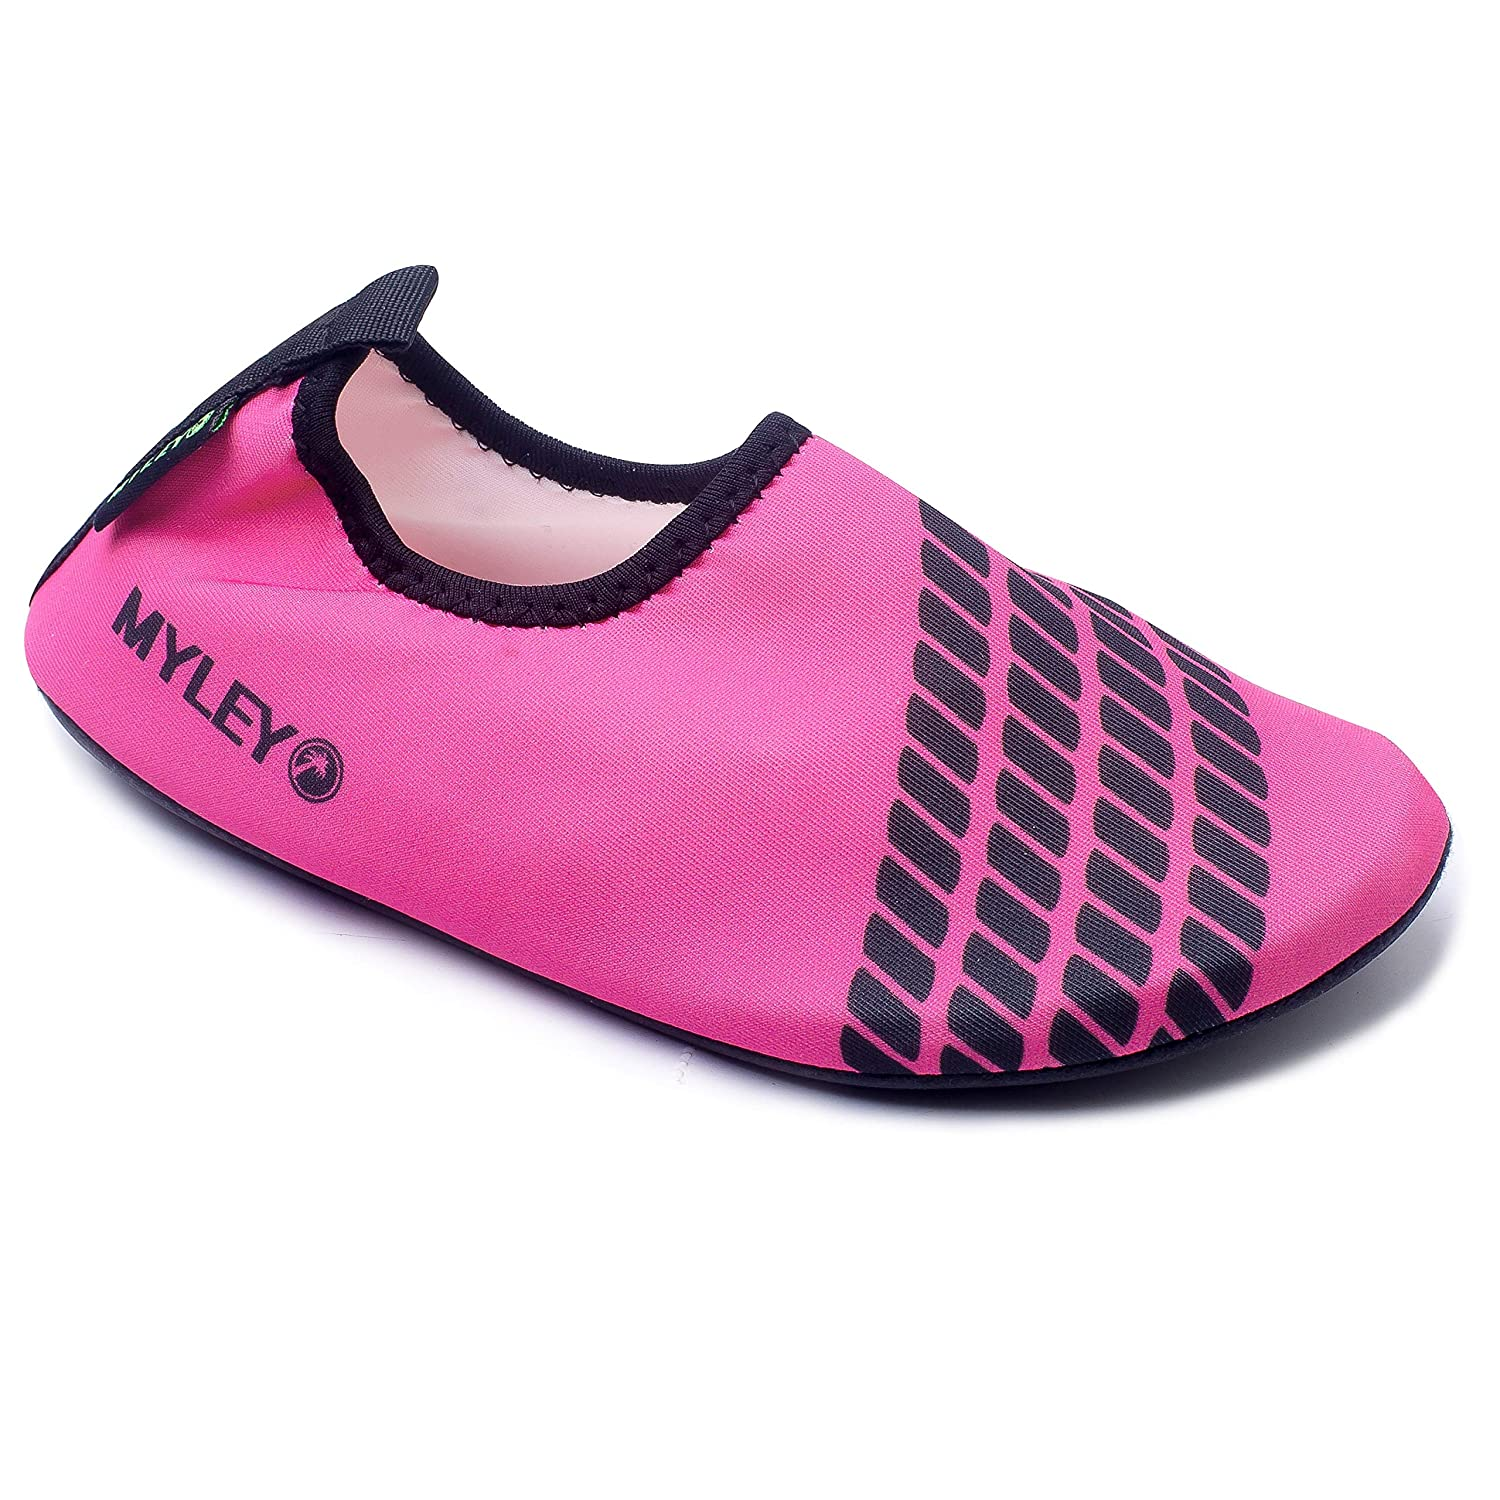 Hysenm Barefoot Water Aqua Shoes Ultra-Light Beach Swim Surf Yoga Exercise Shoes for Kids